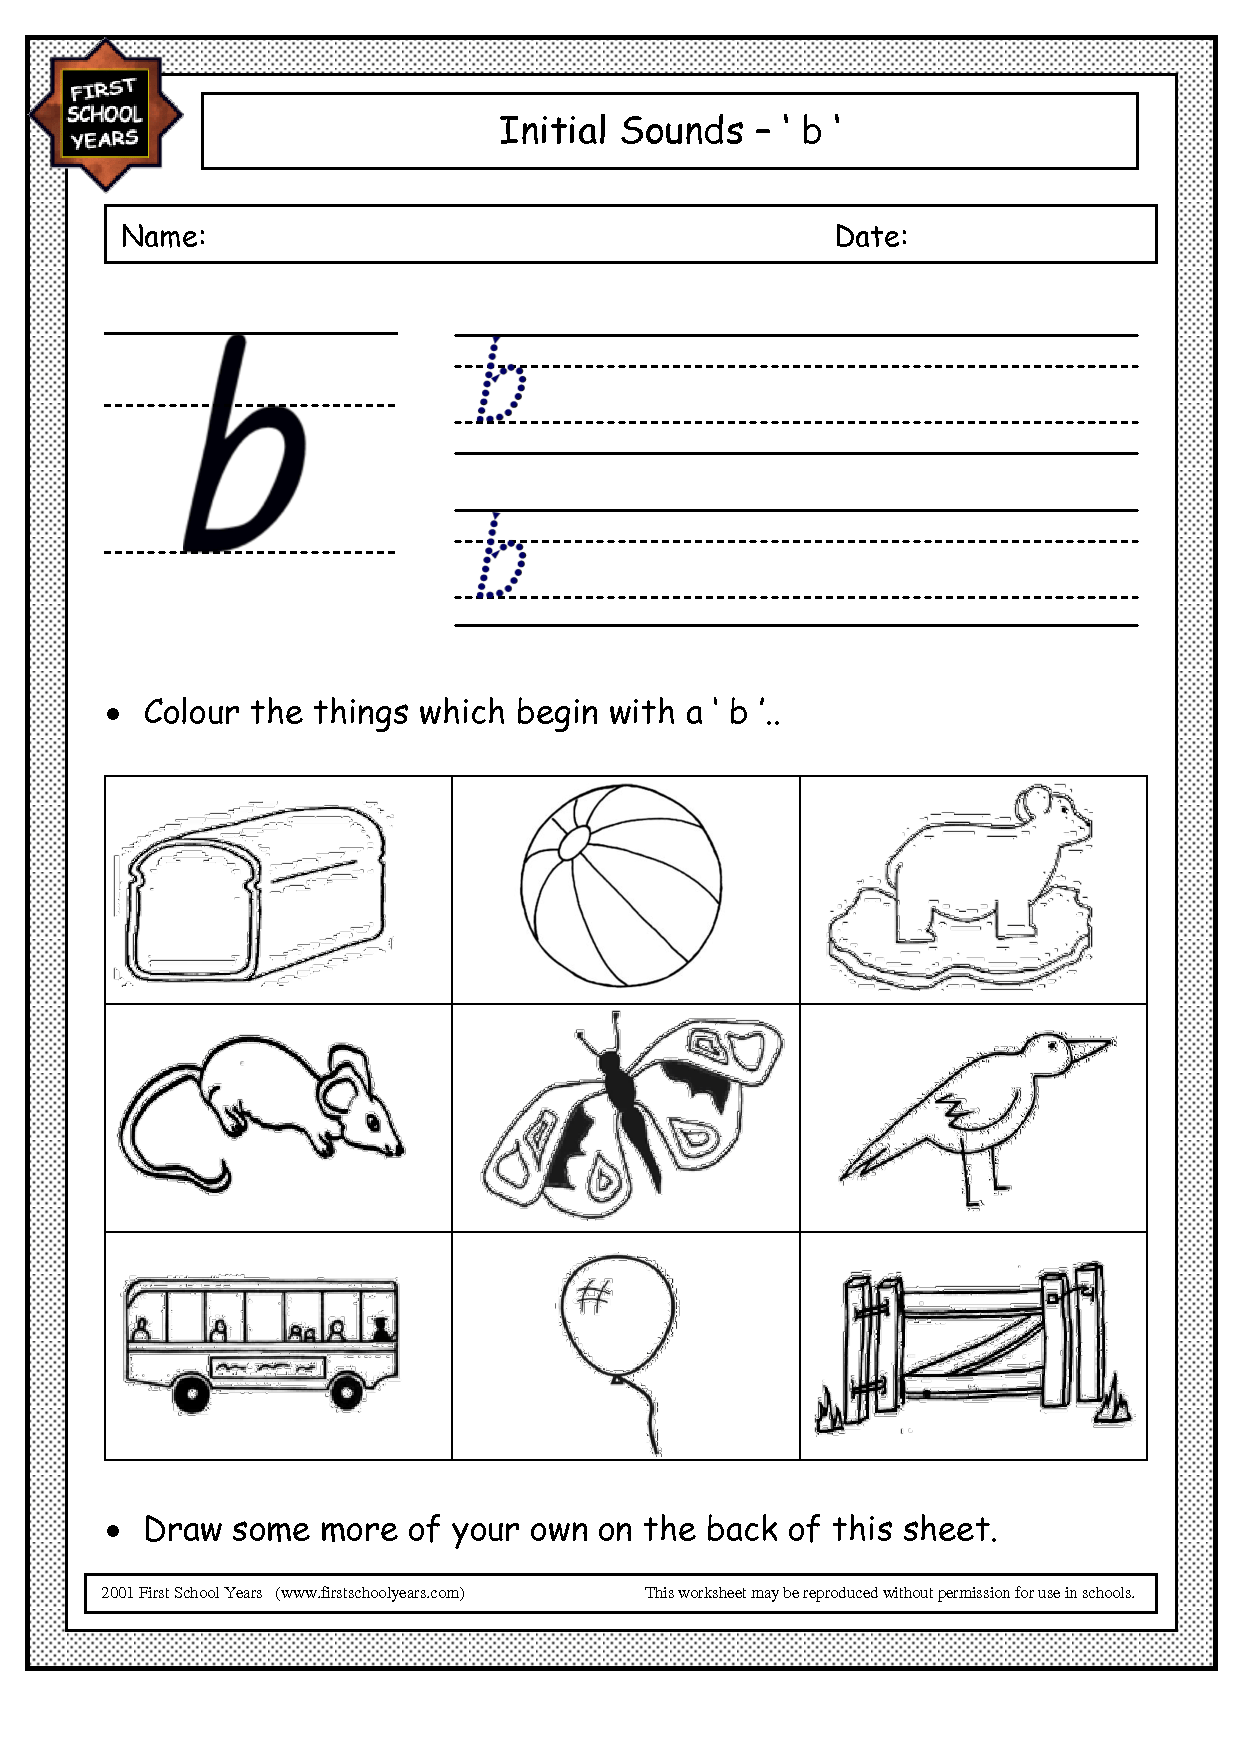 Worksheet Jolly Phonics Worksheets Worksheet Fun Worksheet Study Site